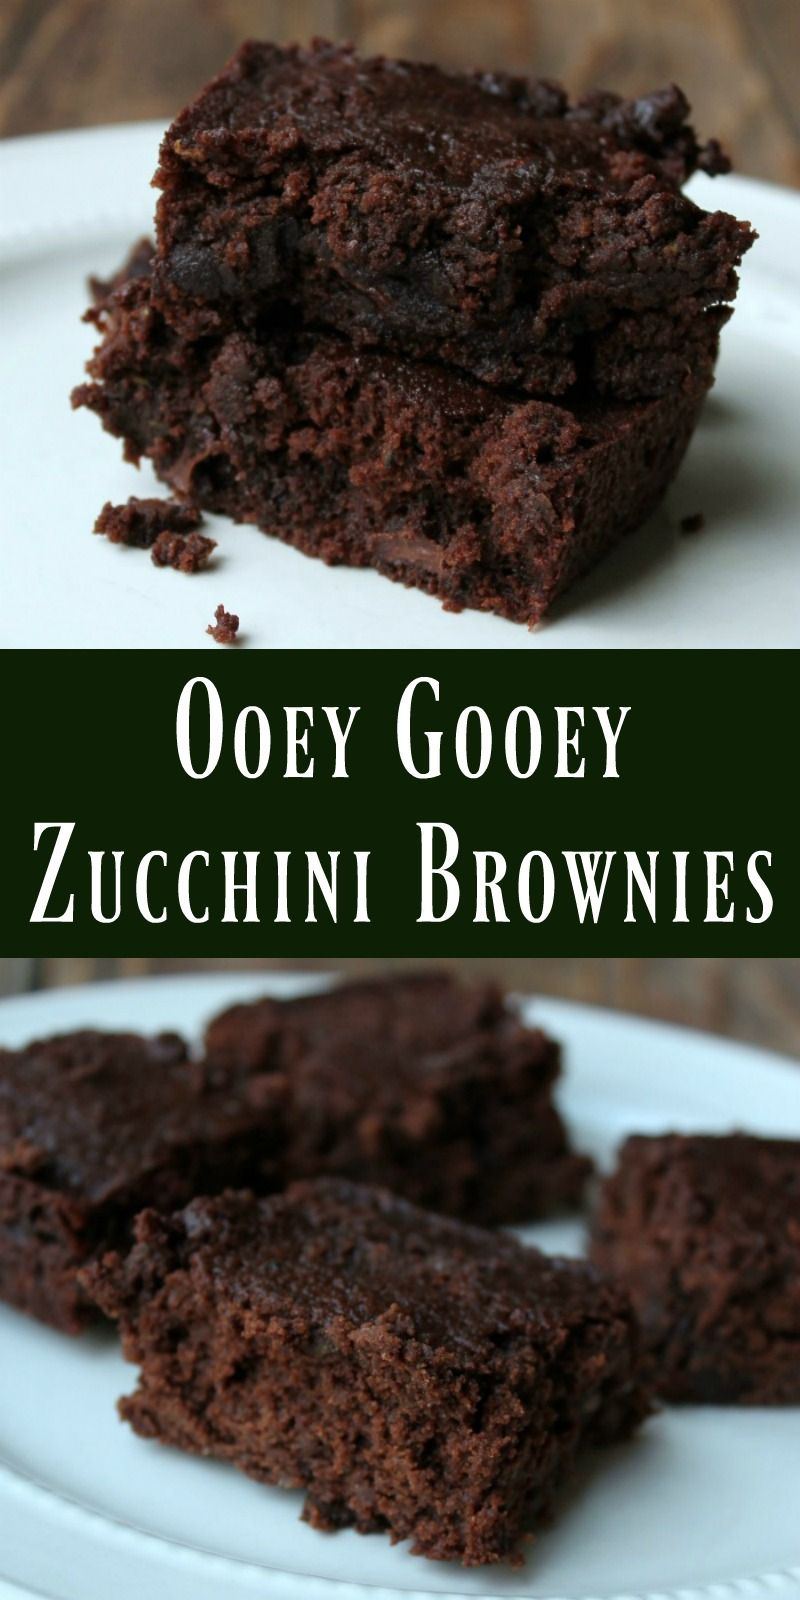 Zucchini Brownies Recipe With Images Zucchini Brownies